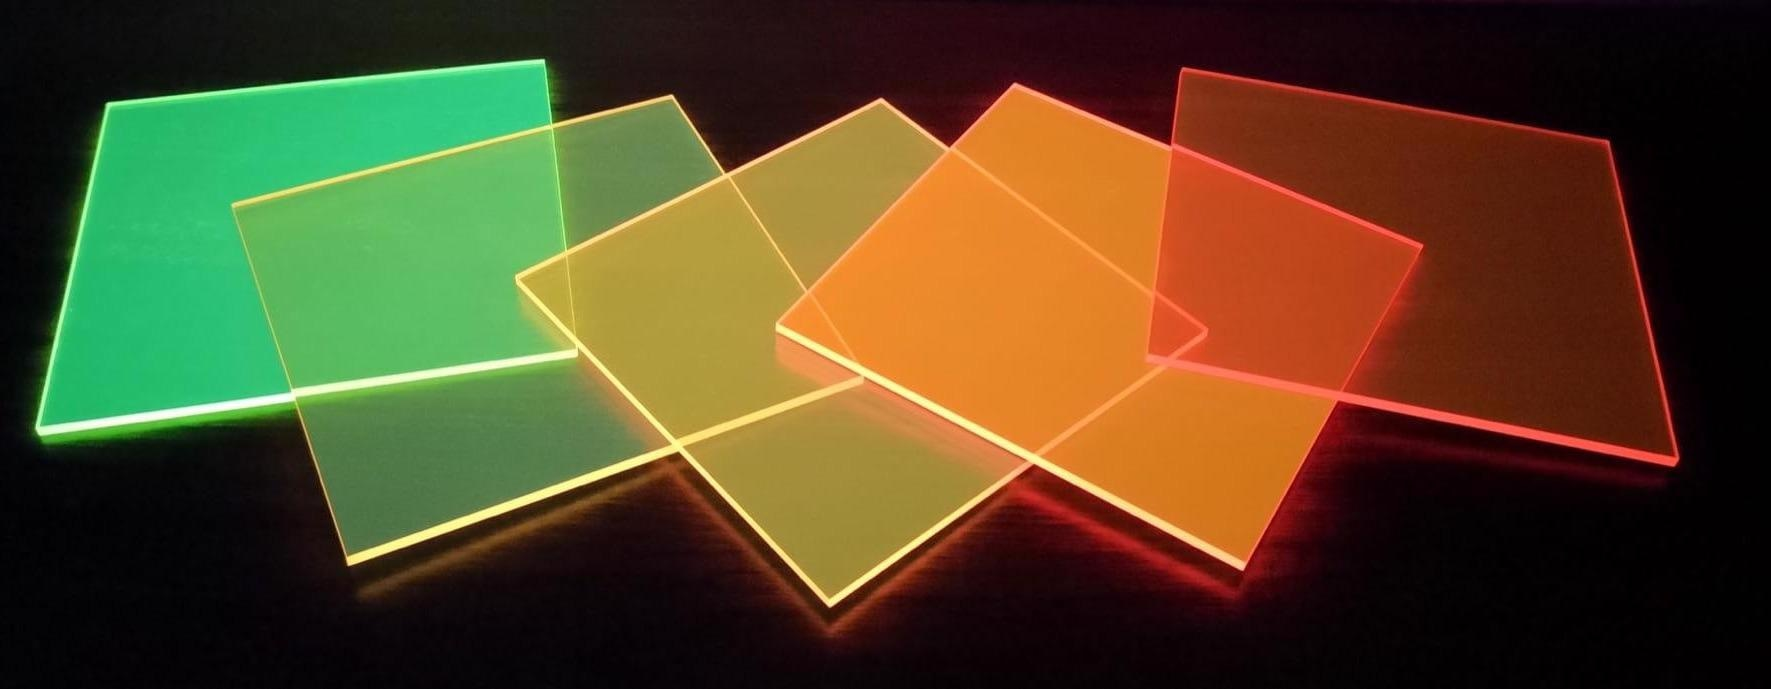 New Polymer Cores Added to Windows Could Solve Energy Issues for Buildings